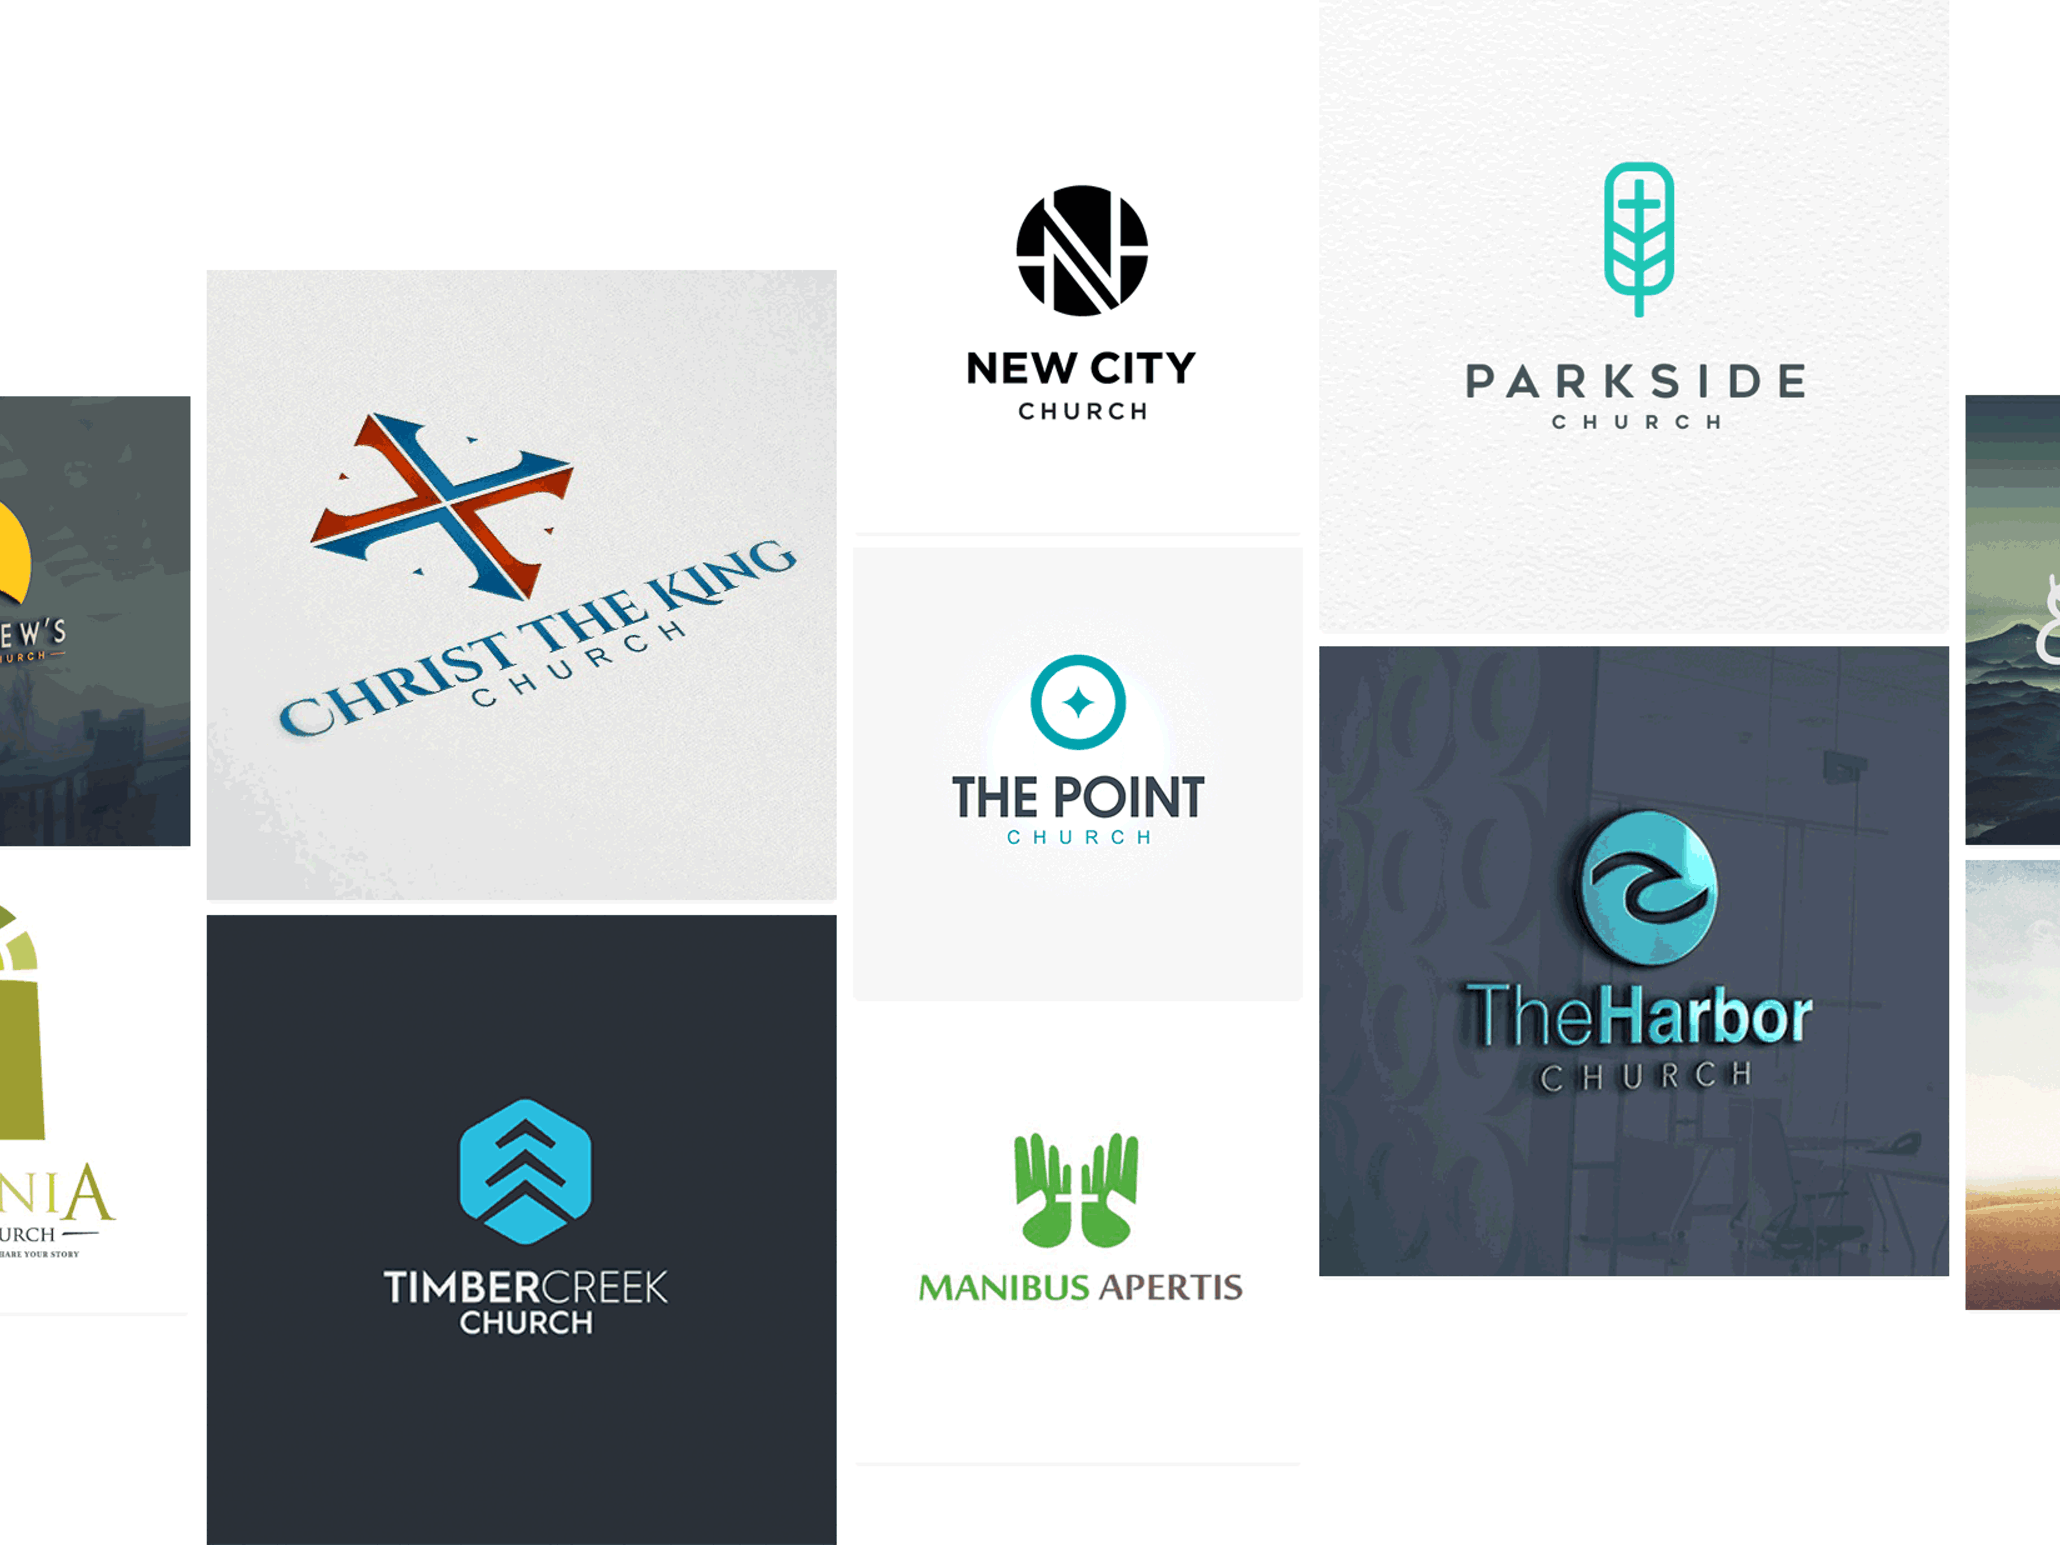 44 church logos to inspire your flock - 99designs